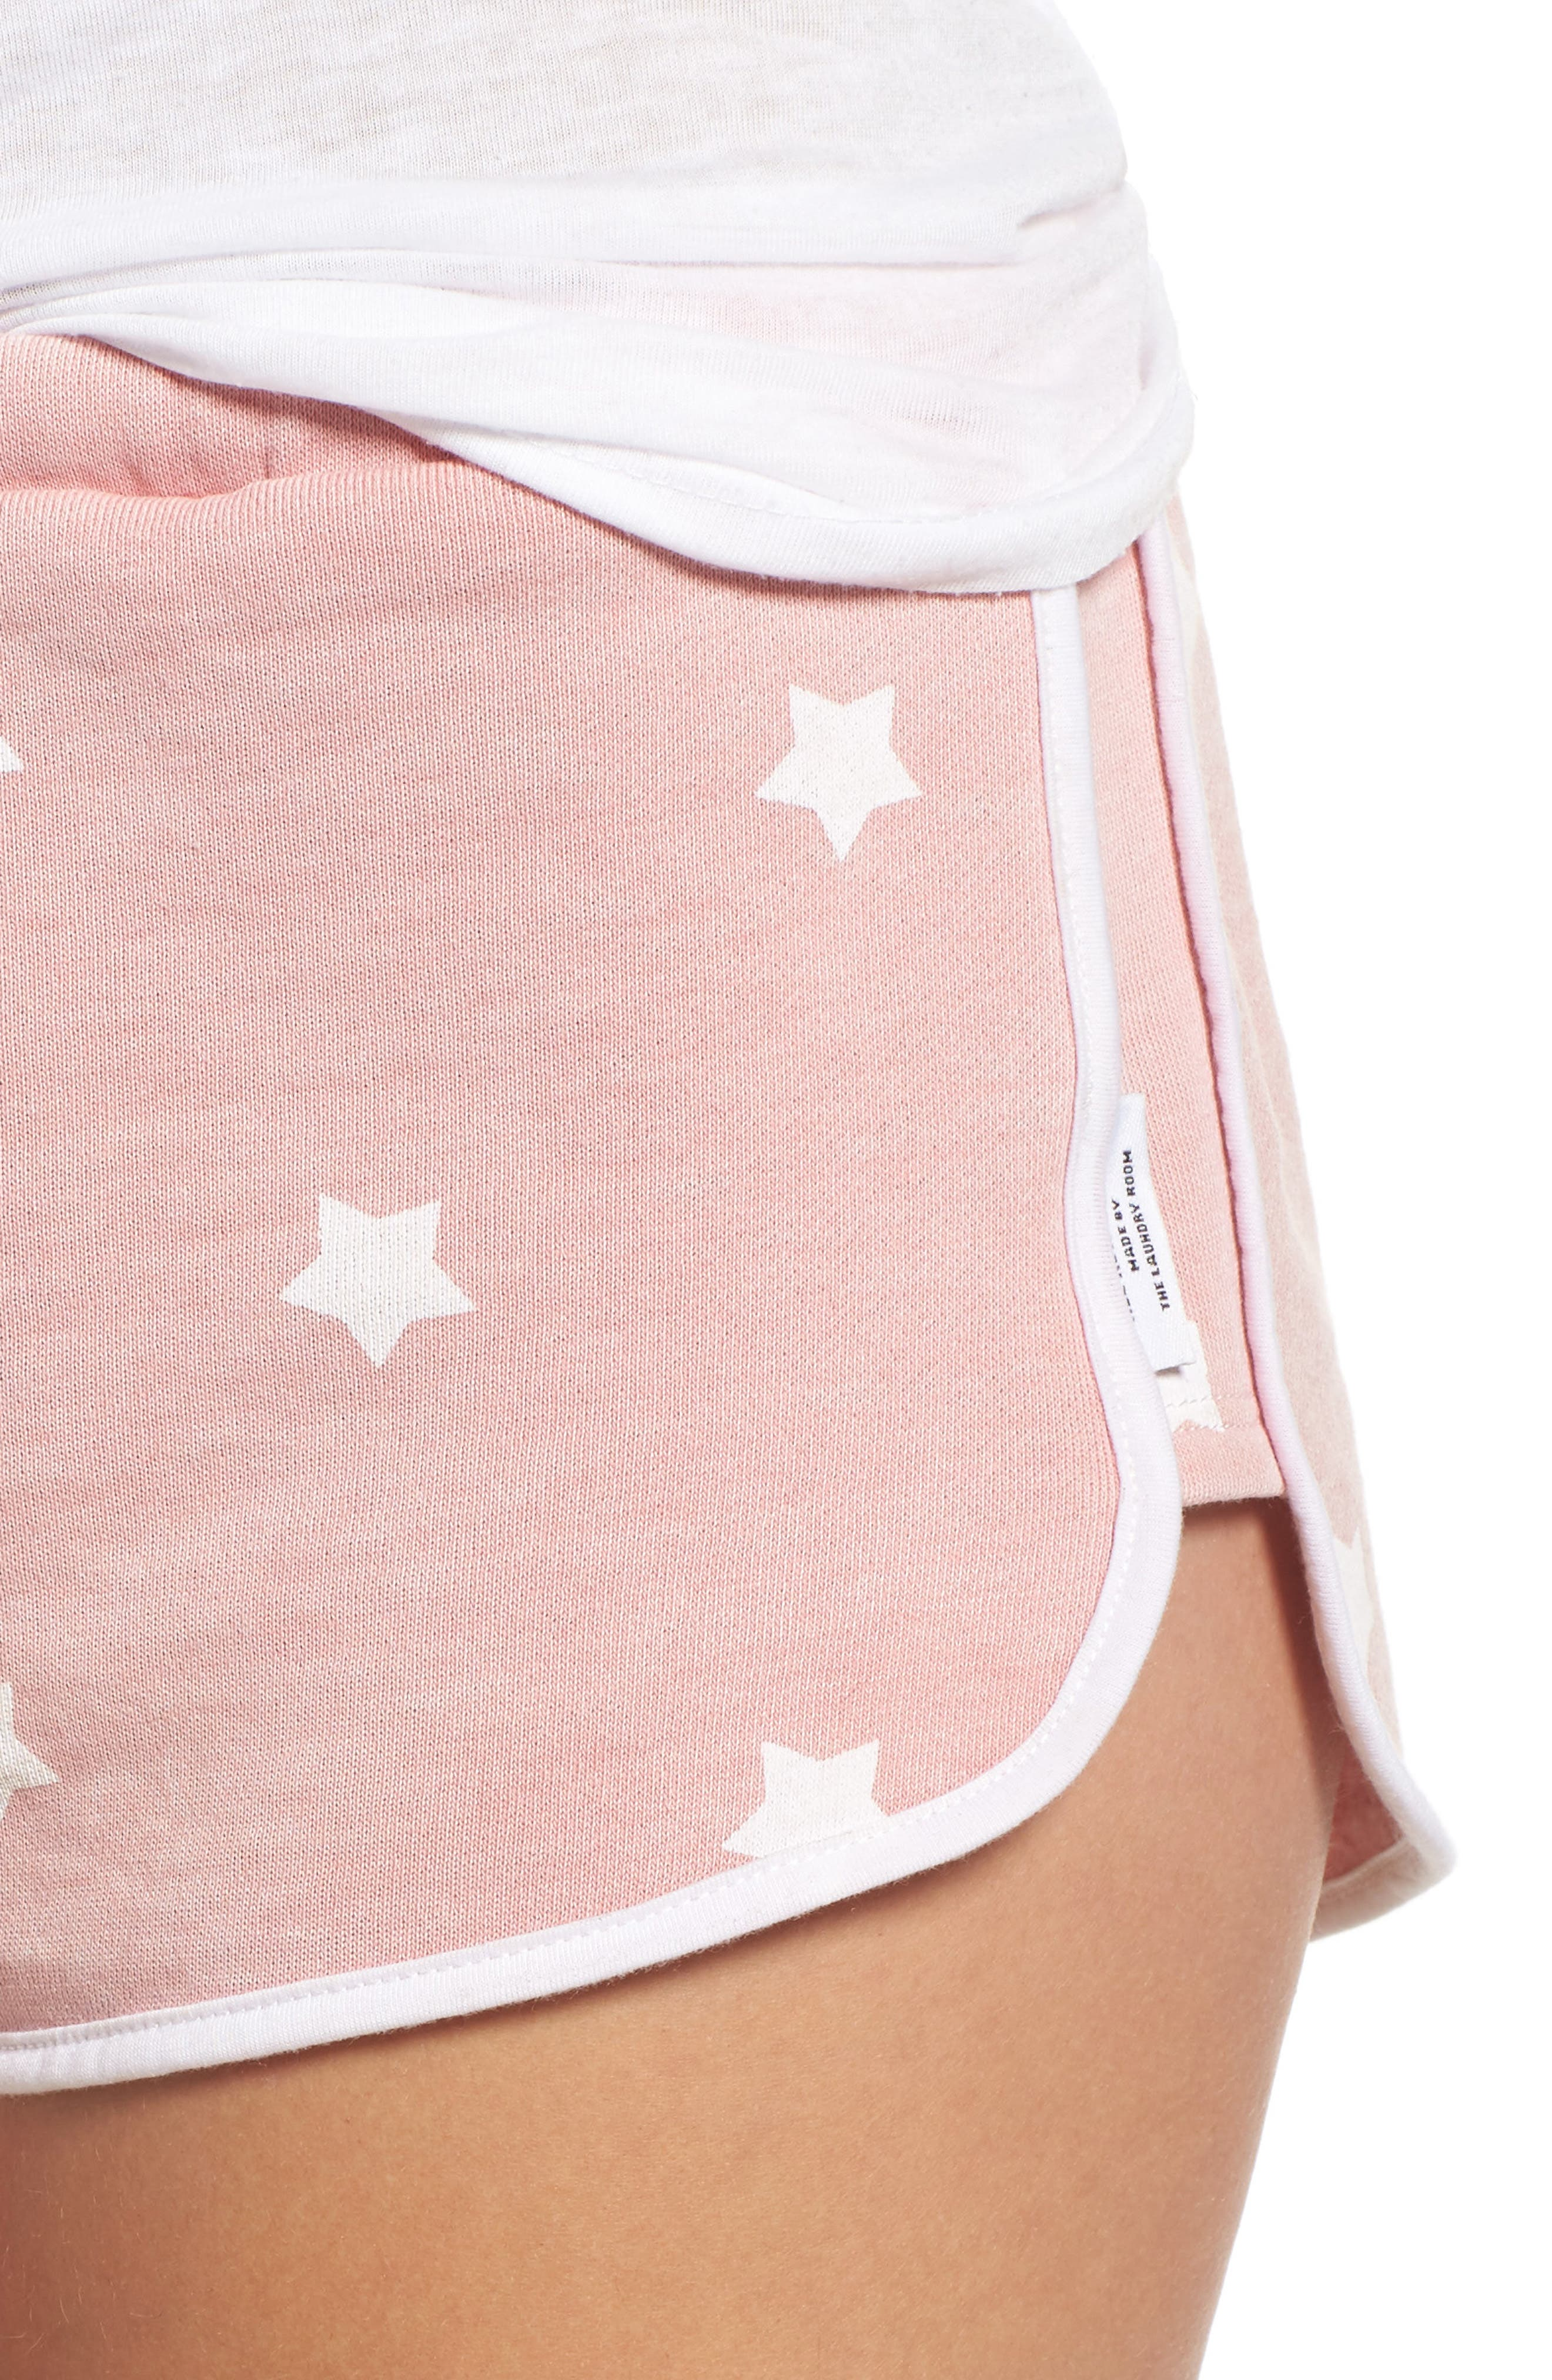 Cozy Crew Lounge Shorts,                             Alternate thumbnail 5, color,                             Champagne Star